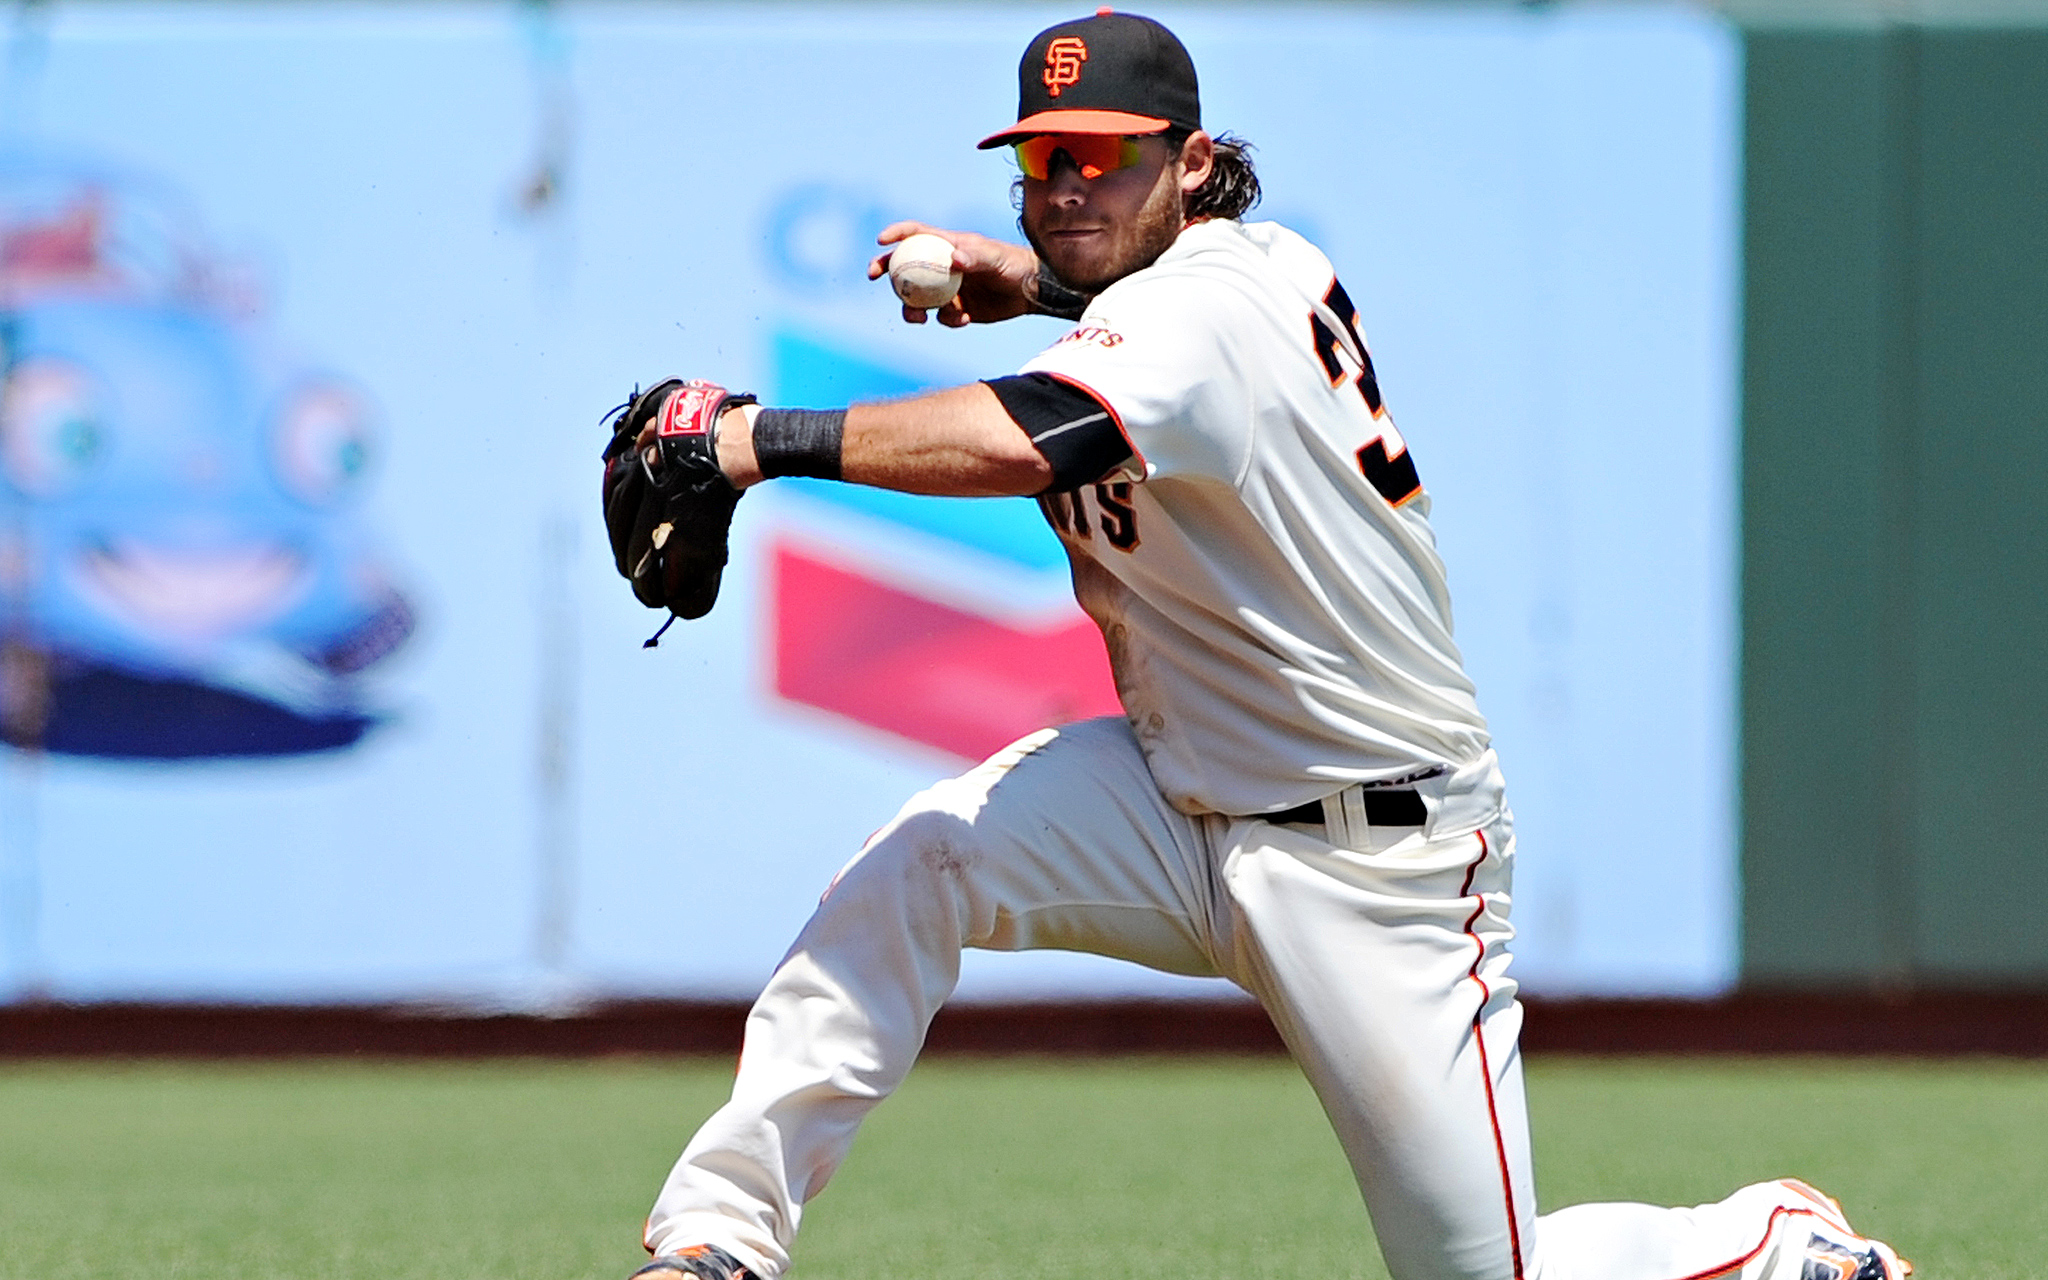 Best Defender (infielder): Brandon Crawford